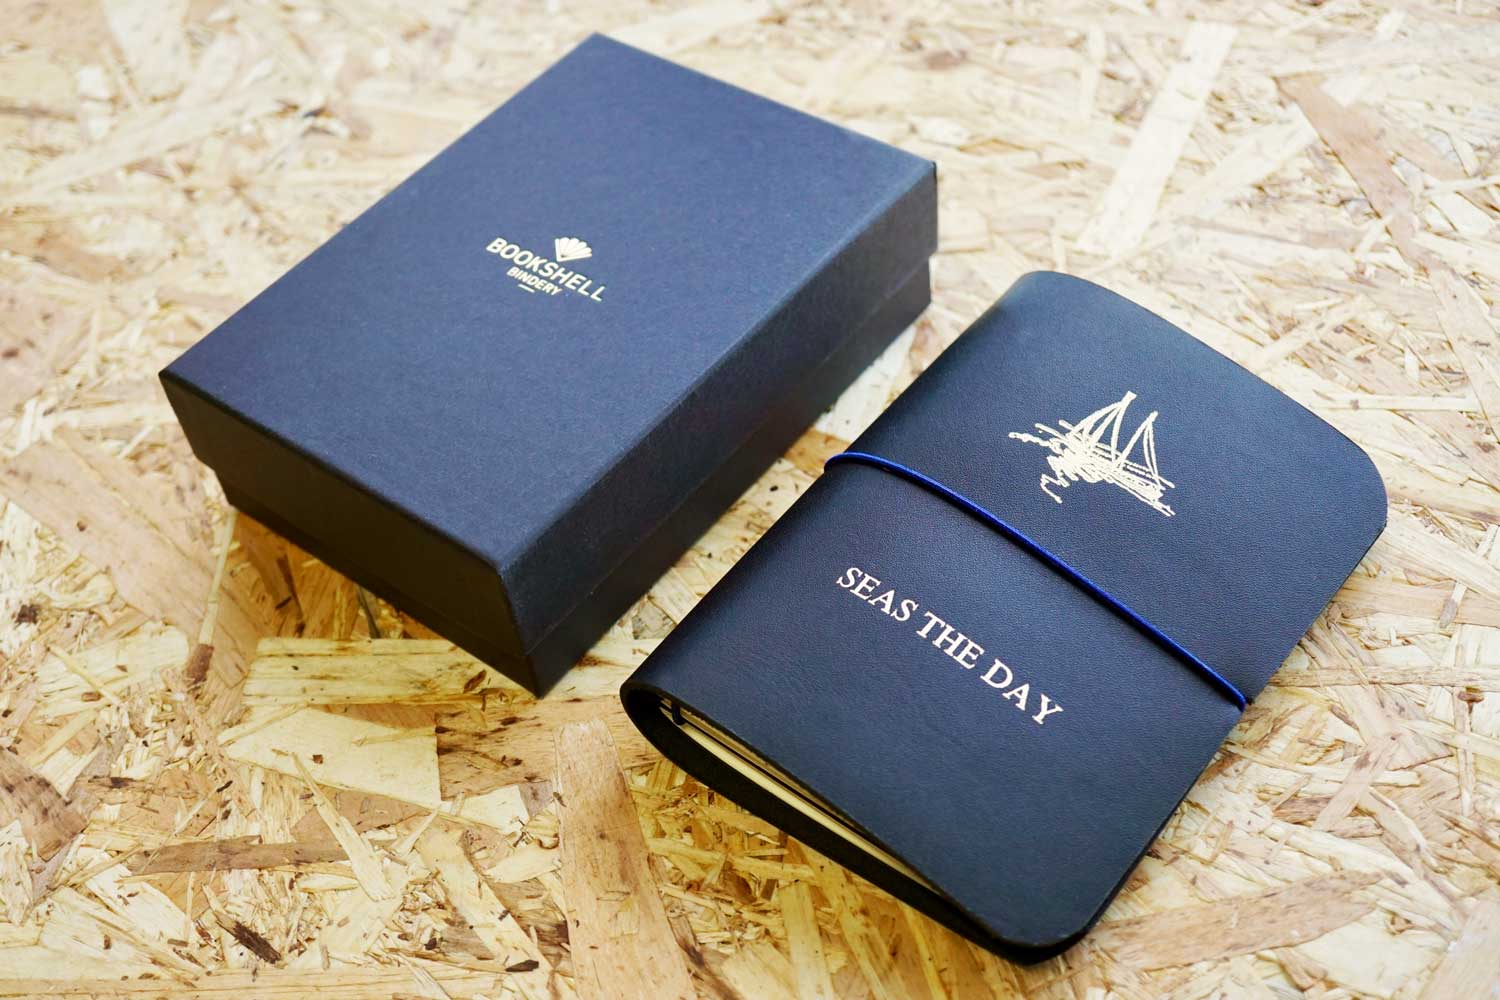 Never-ending journal - Seas the day, leather travel journal, A6 pocket size with boat illustration embossed in gold foil onto the cover